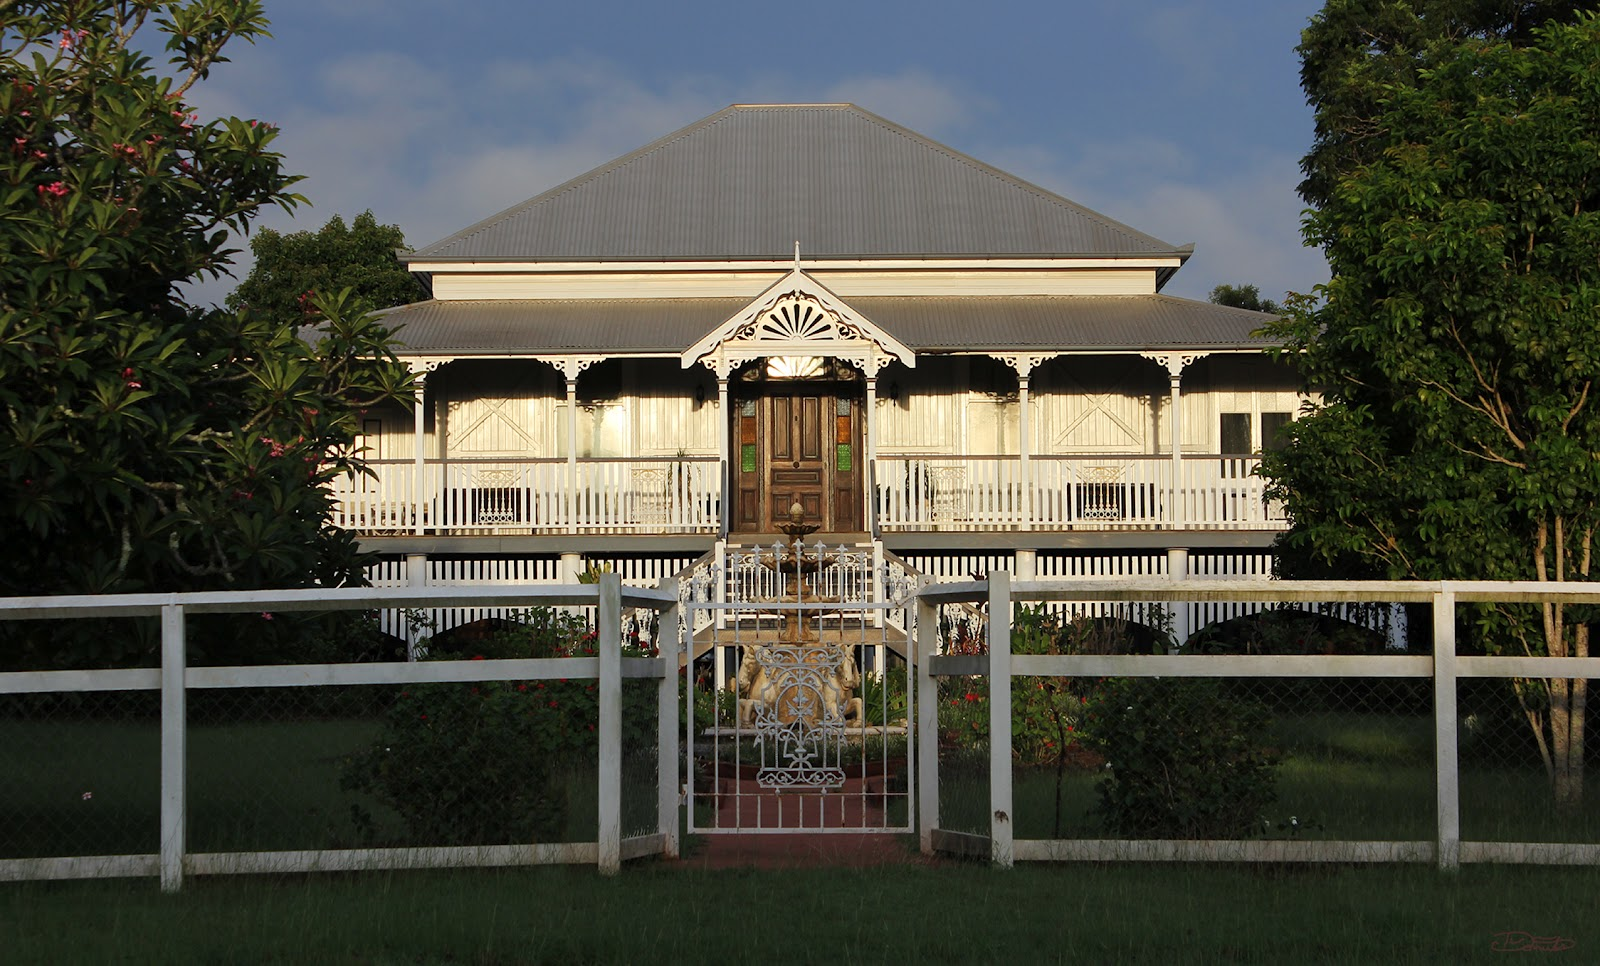 In my house my house rules the queenslander gone wrong for Queenslander home designs australia